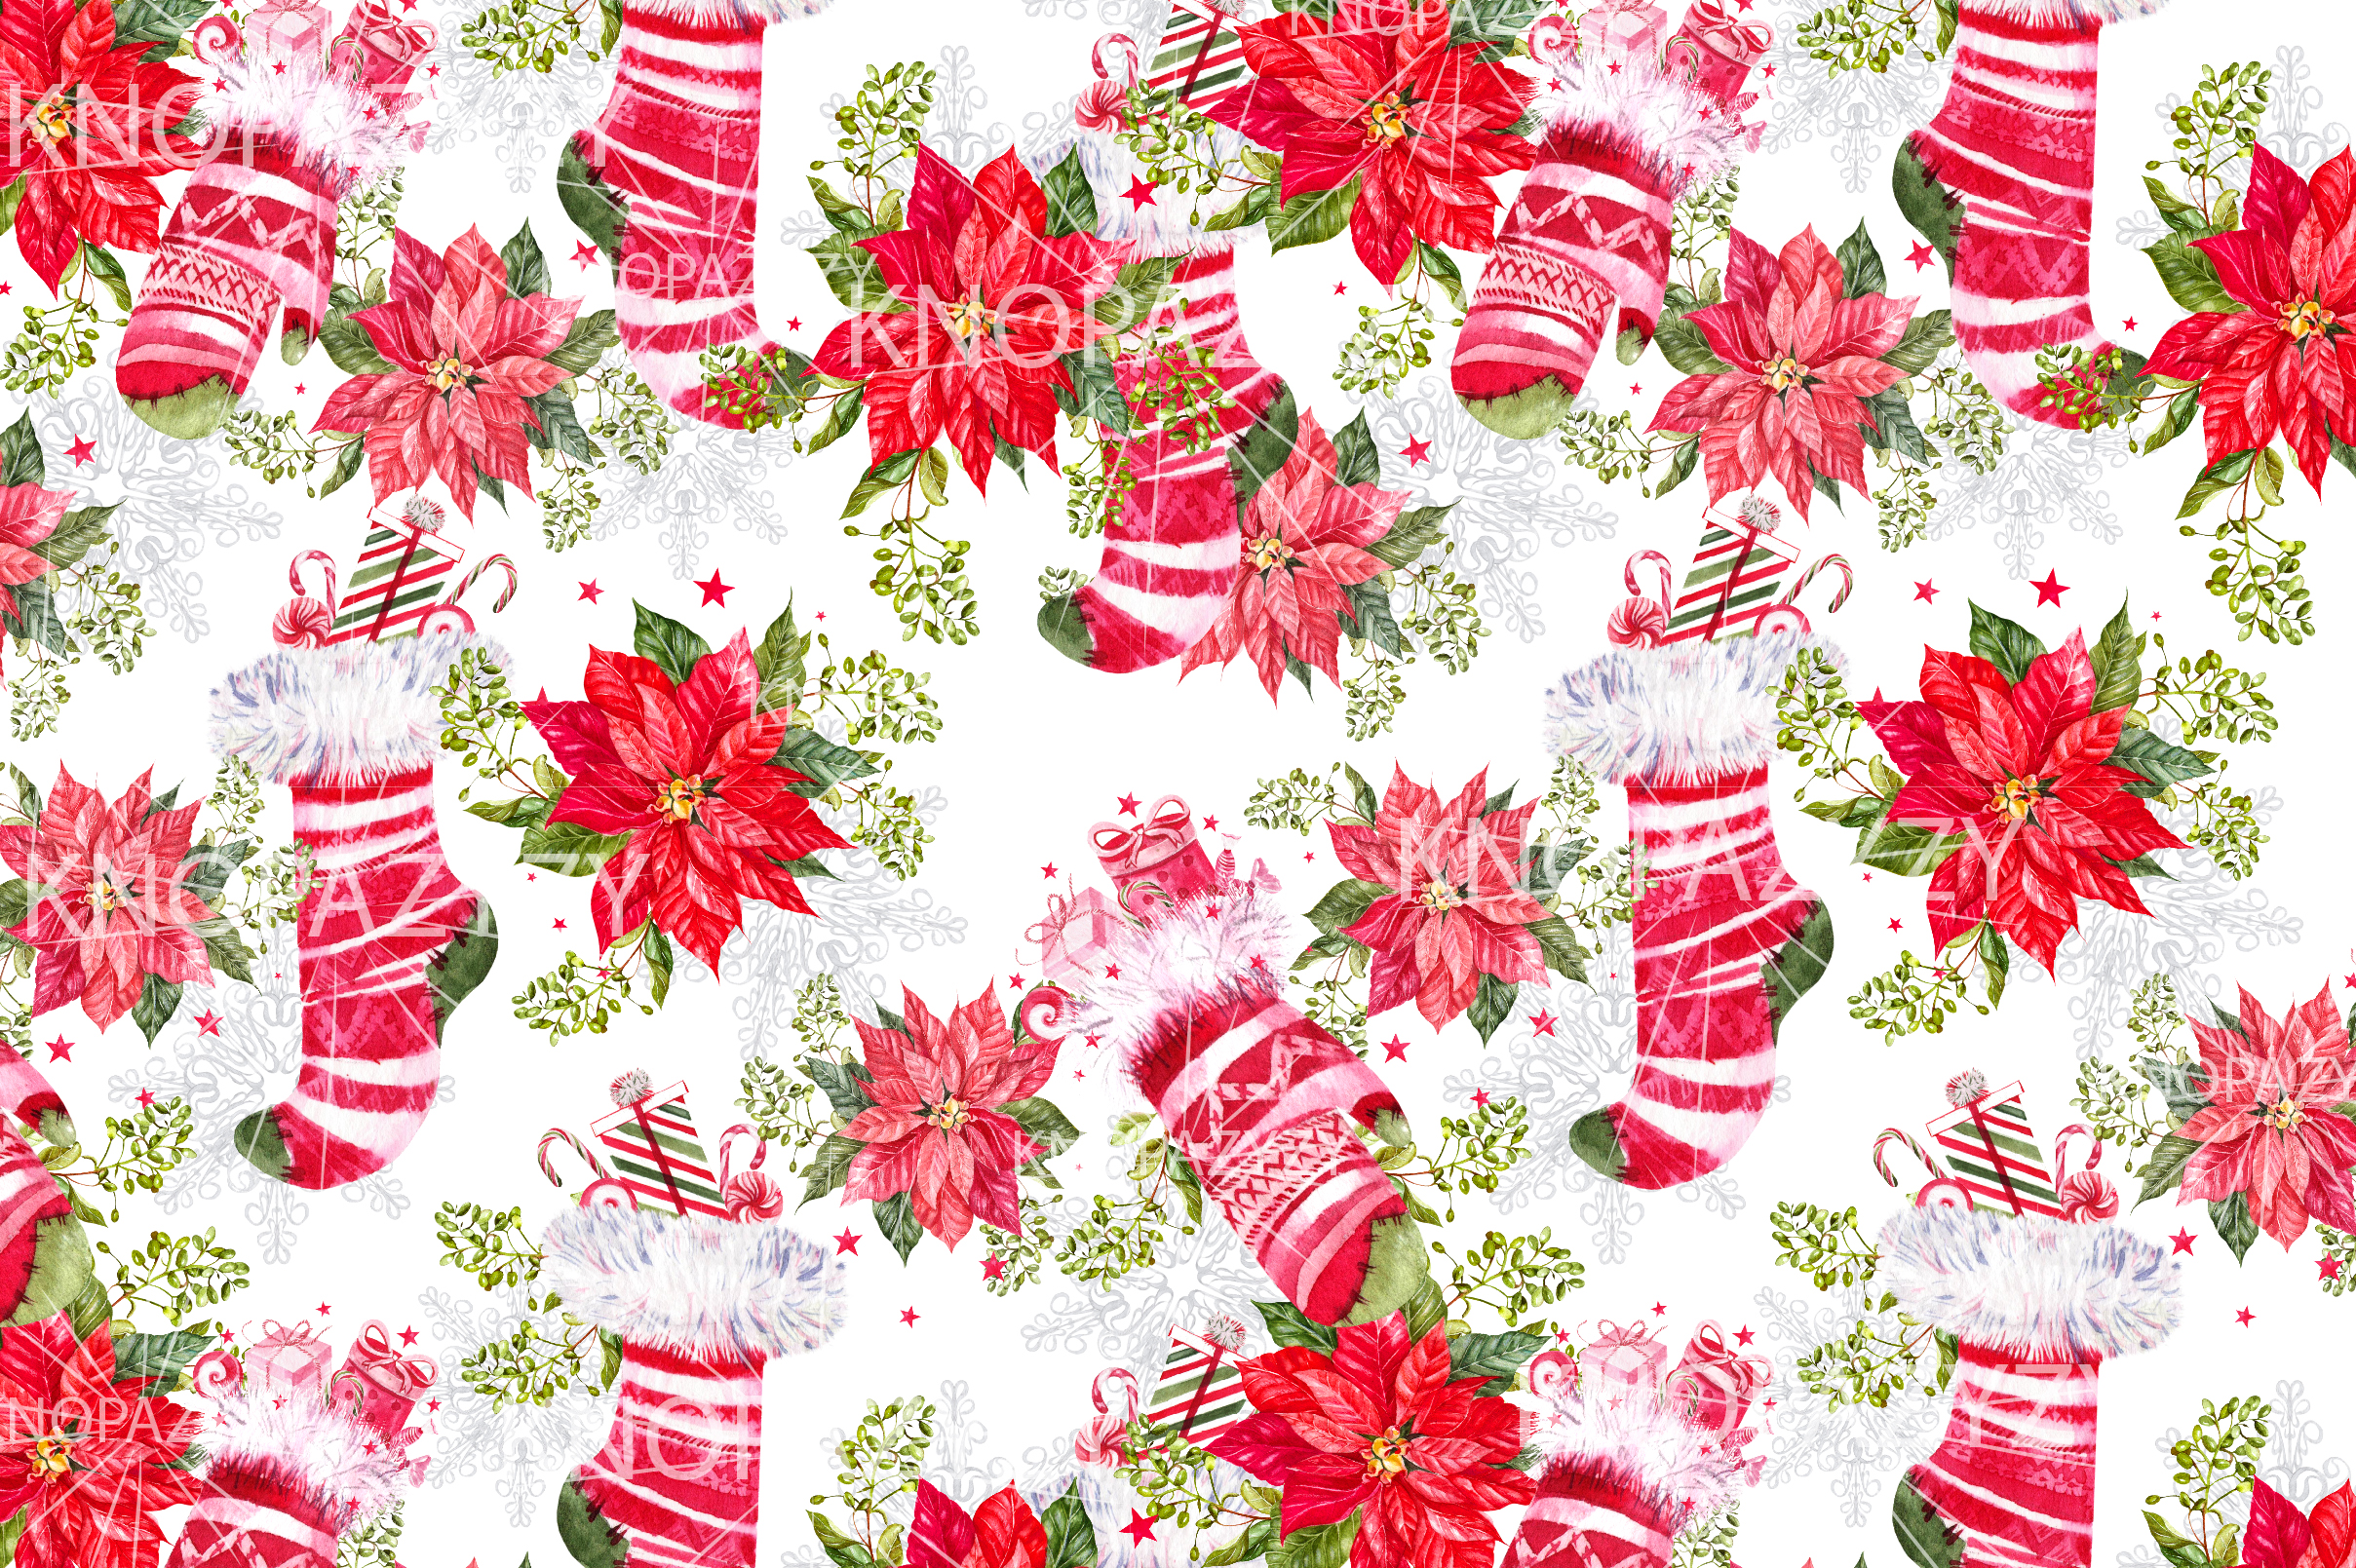 Hand Drawn Watercolor Christmas 13 Patterns example image 14